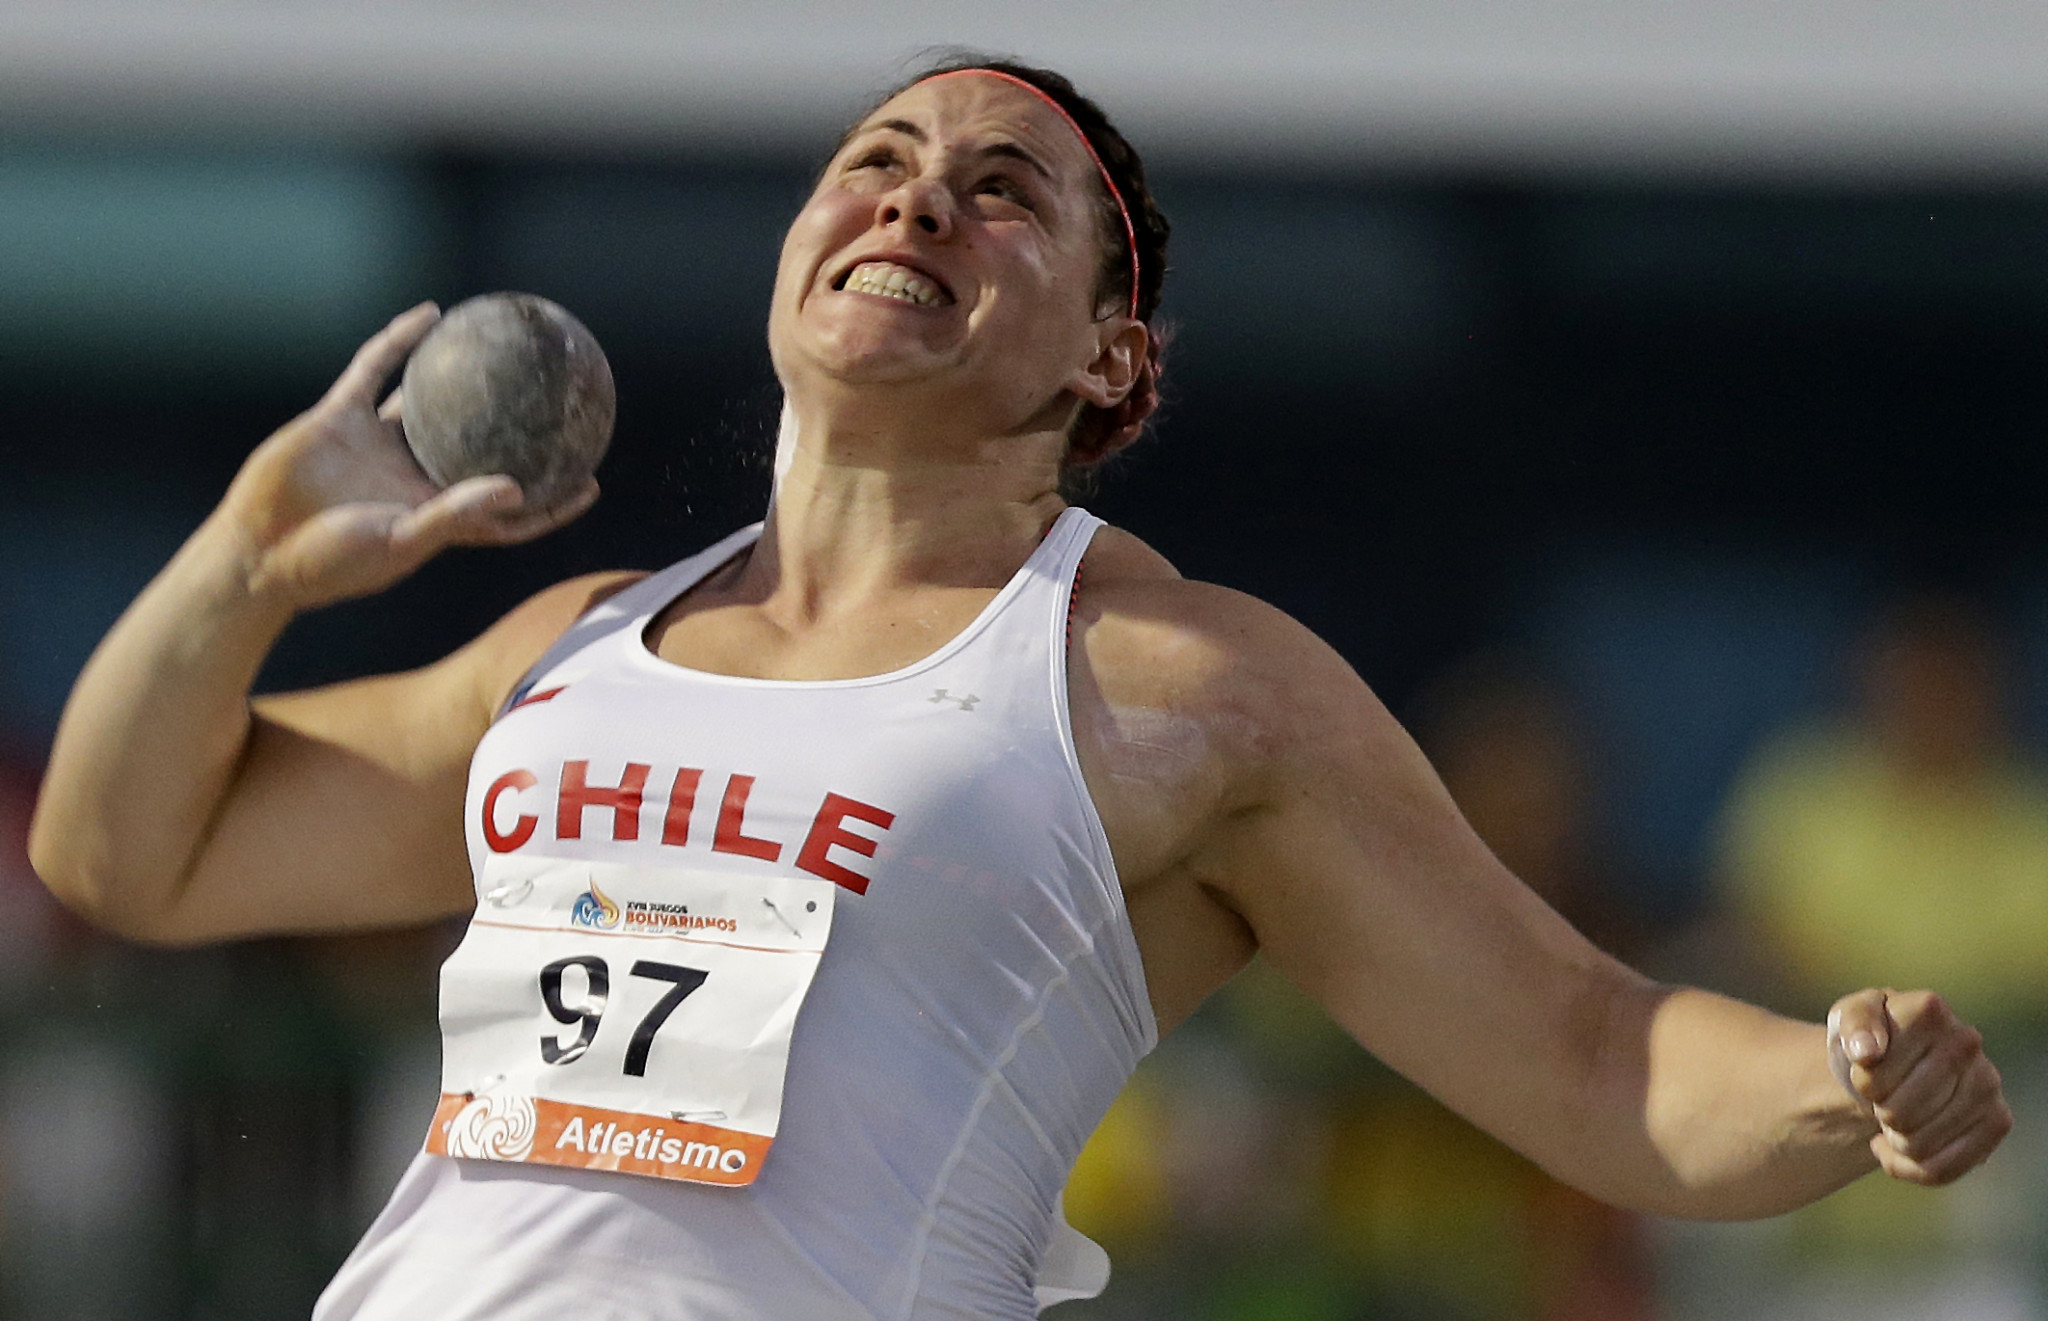 Chilean shot putter suspended after testing positive for banned substance